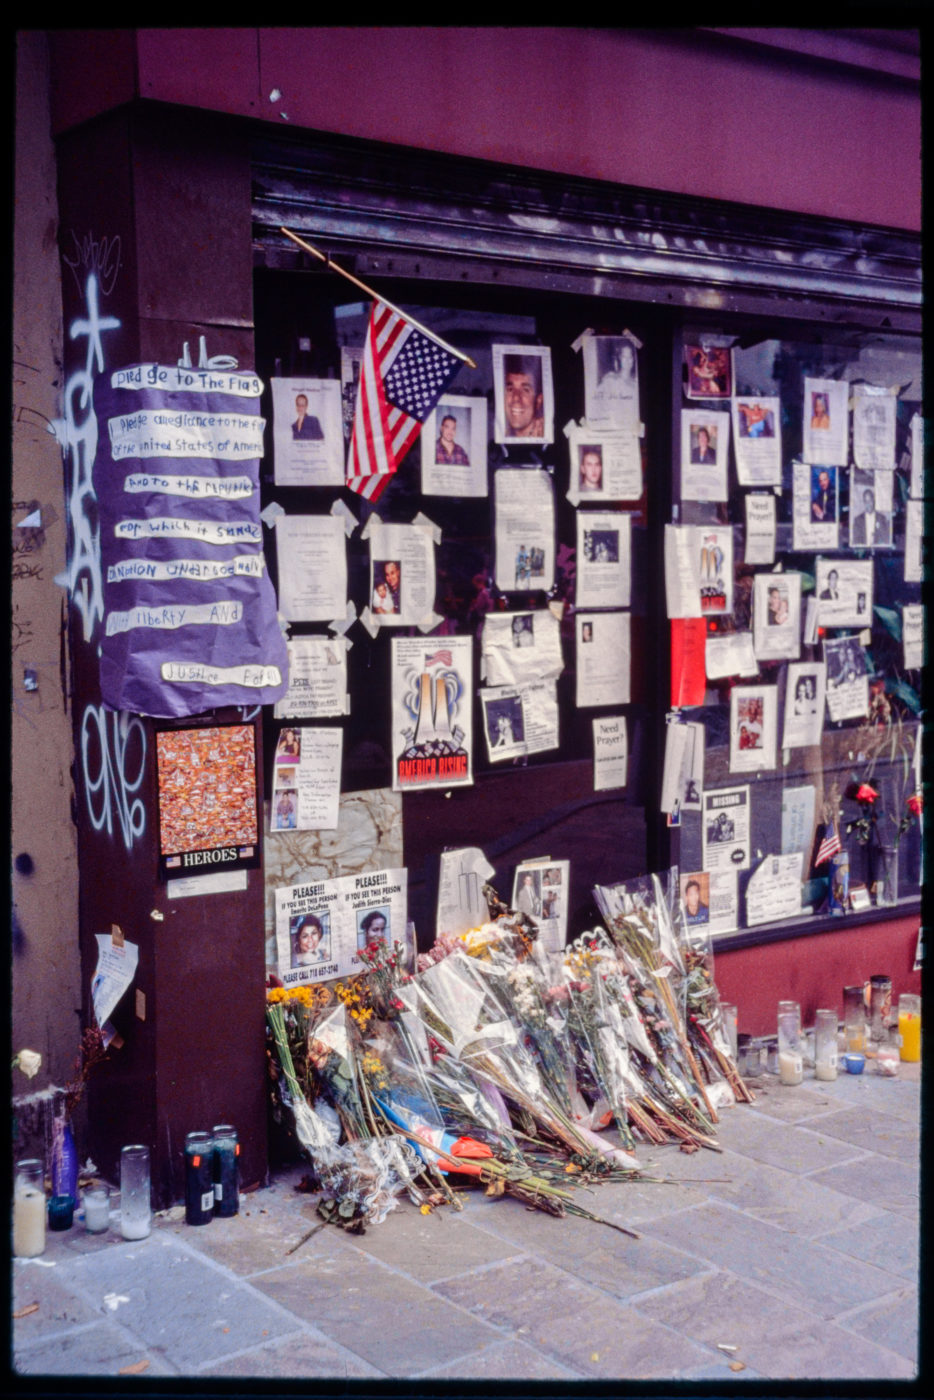 Memorial and Missing Persons Wall on the Side of Building, Flowers and Prayer Candles Left Along Border.jpg